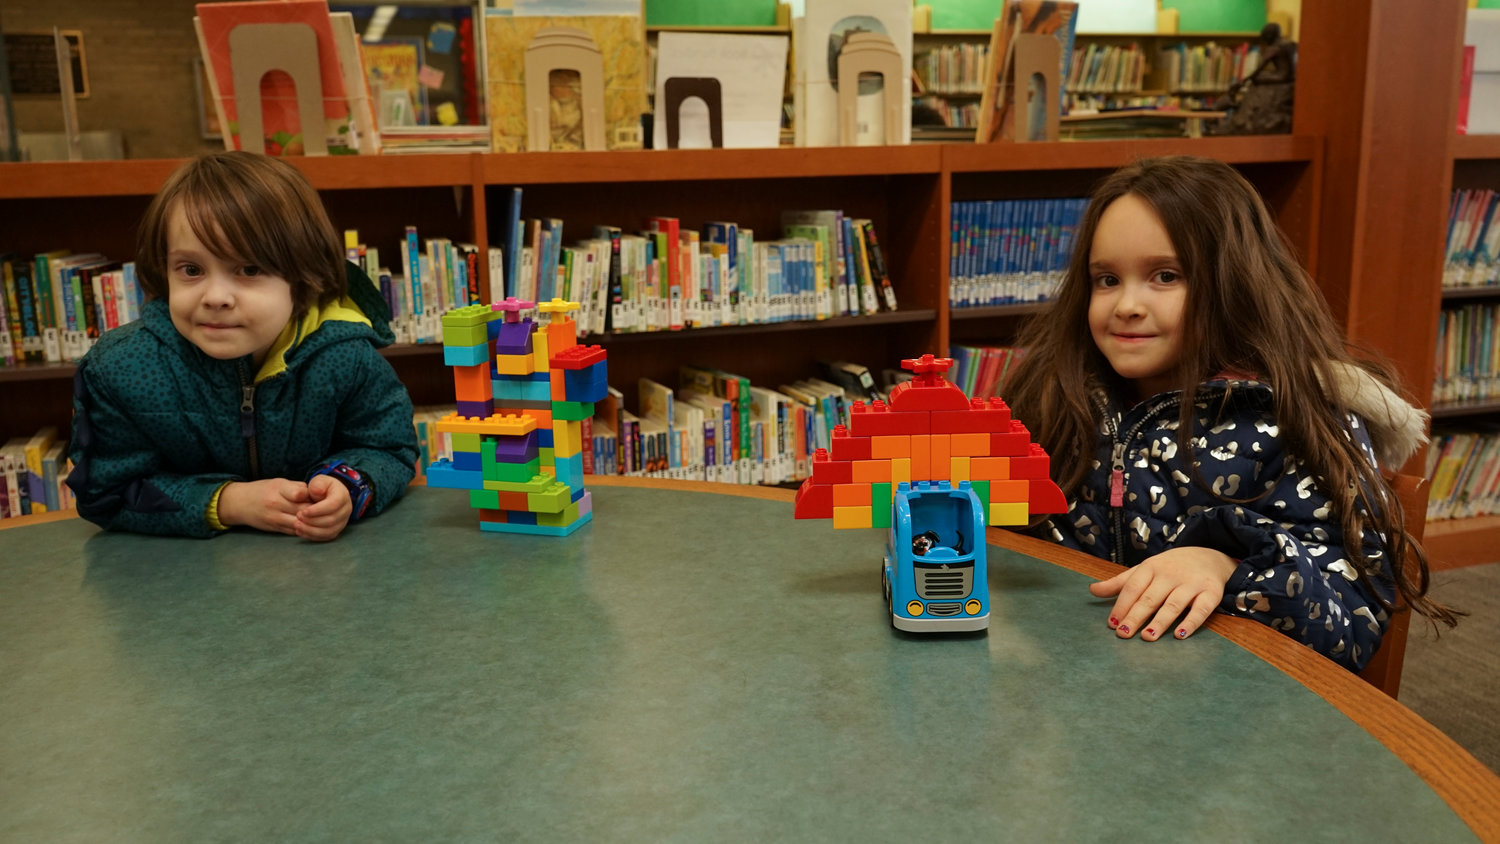 Siblings Adrian, 4, and Annabelle, 6, with their displays: a haunted house and a Rainbow Bulldozer Truck.